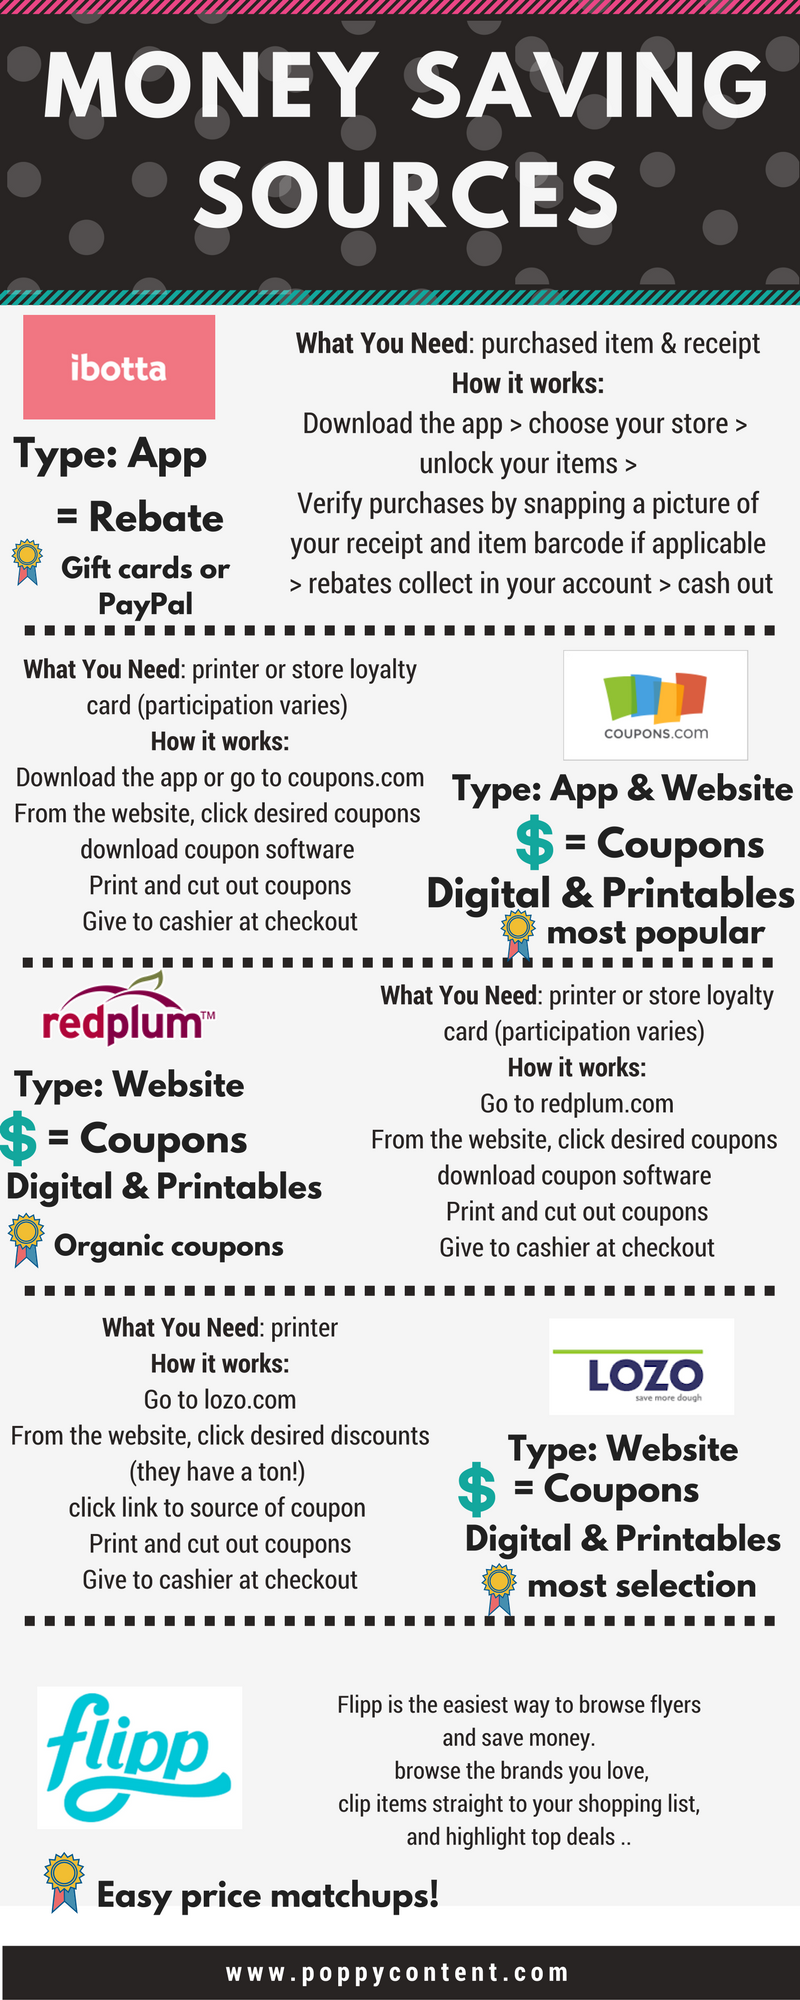 money saving coupon sources infographic